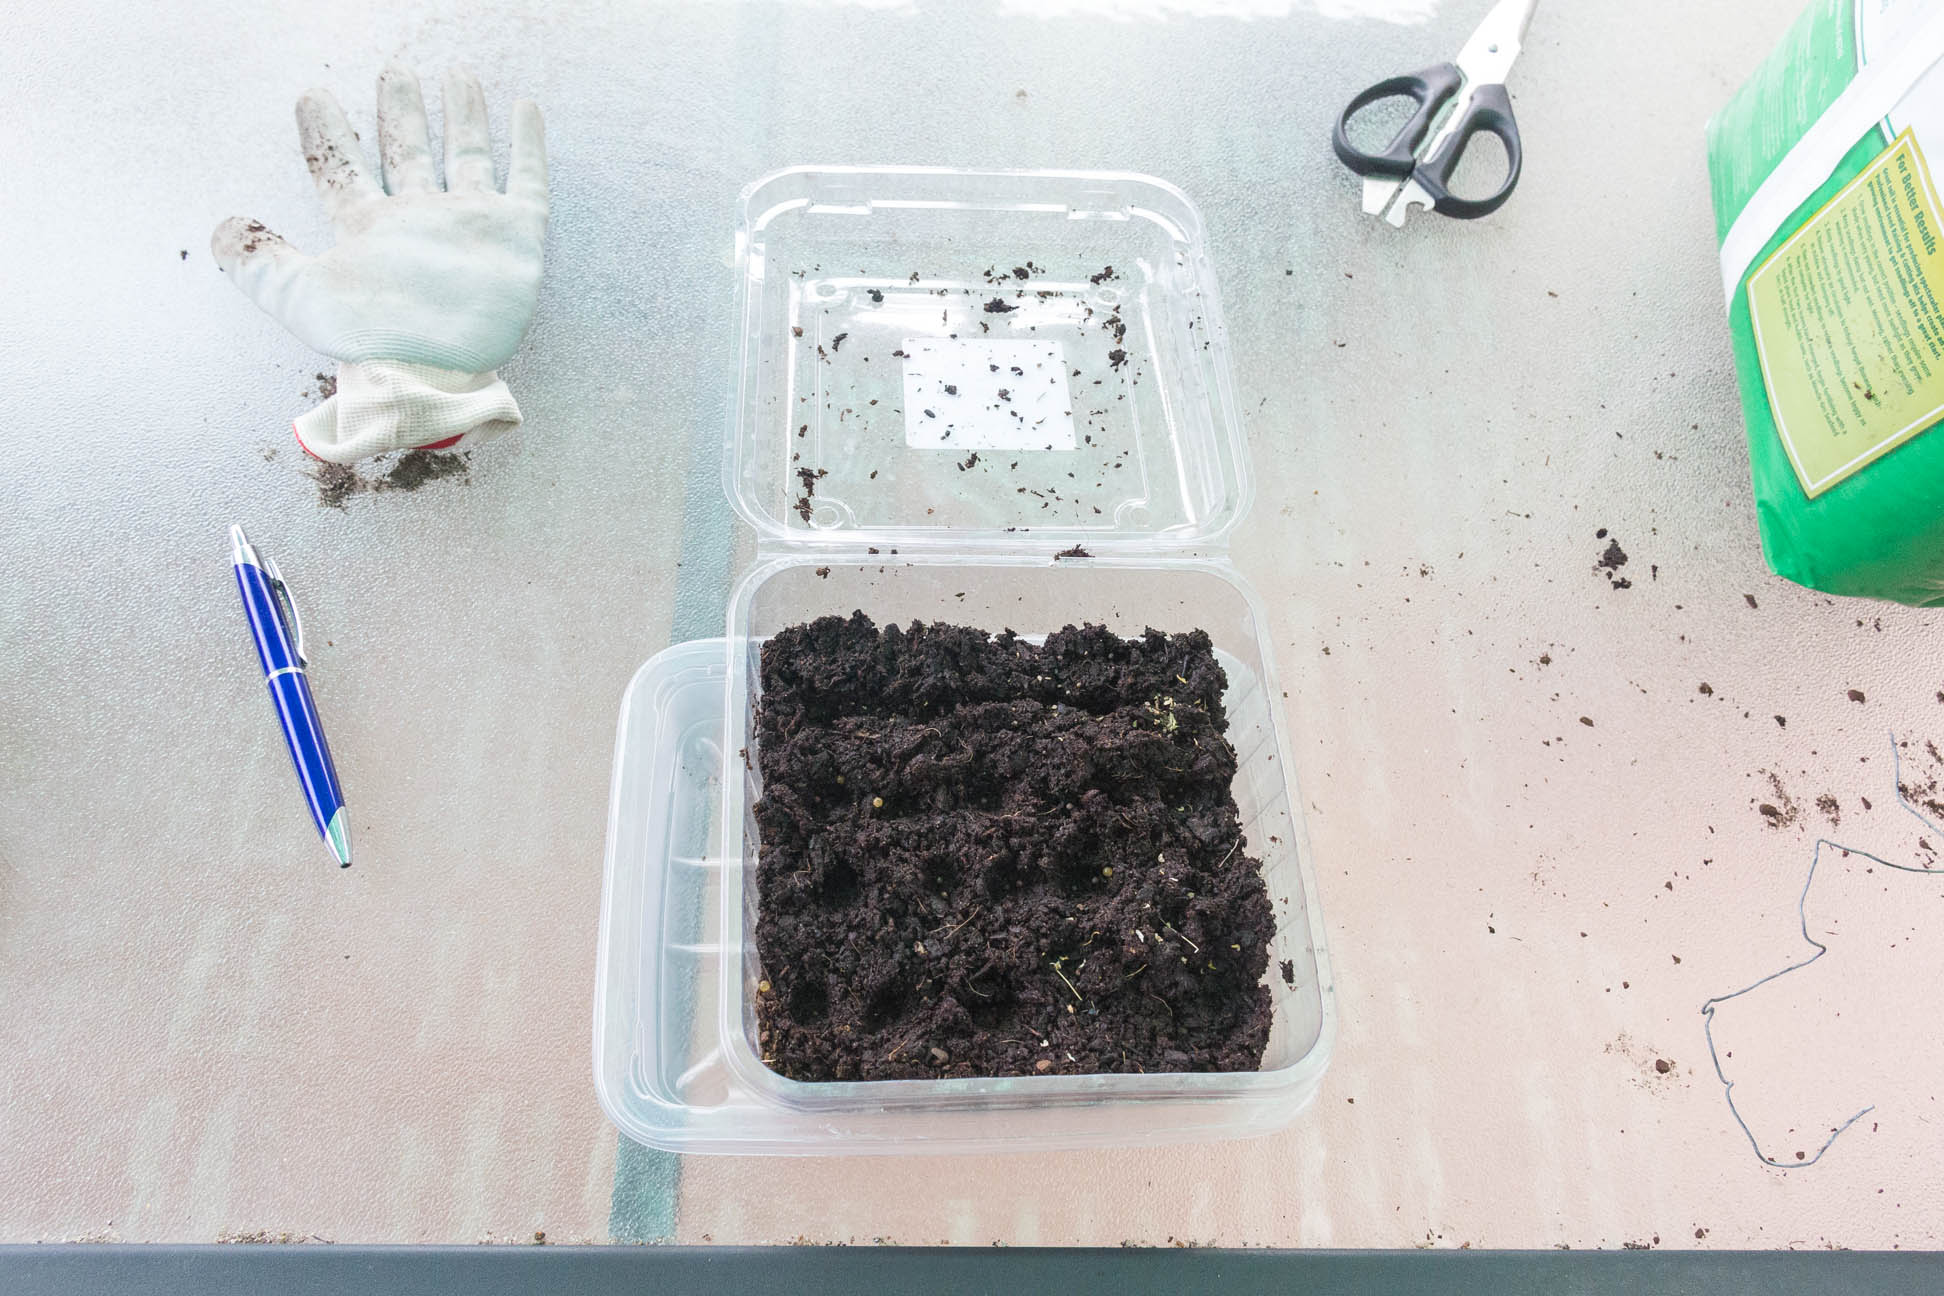 24/04/15 Day 1 Divided the seeds into different sections.